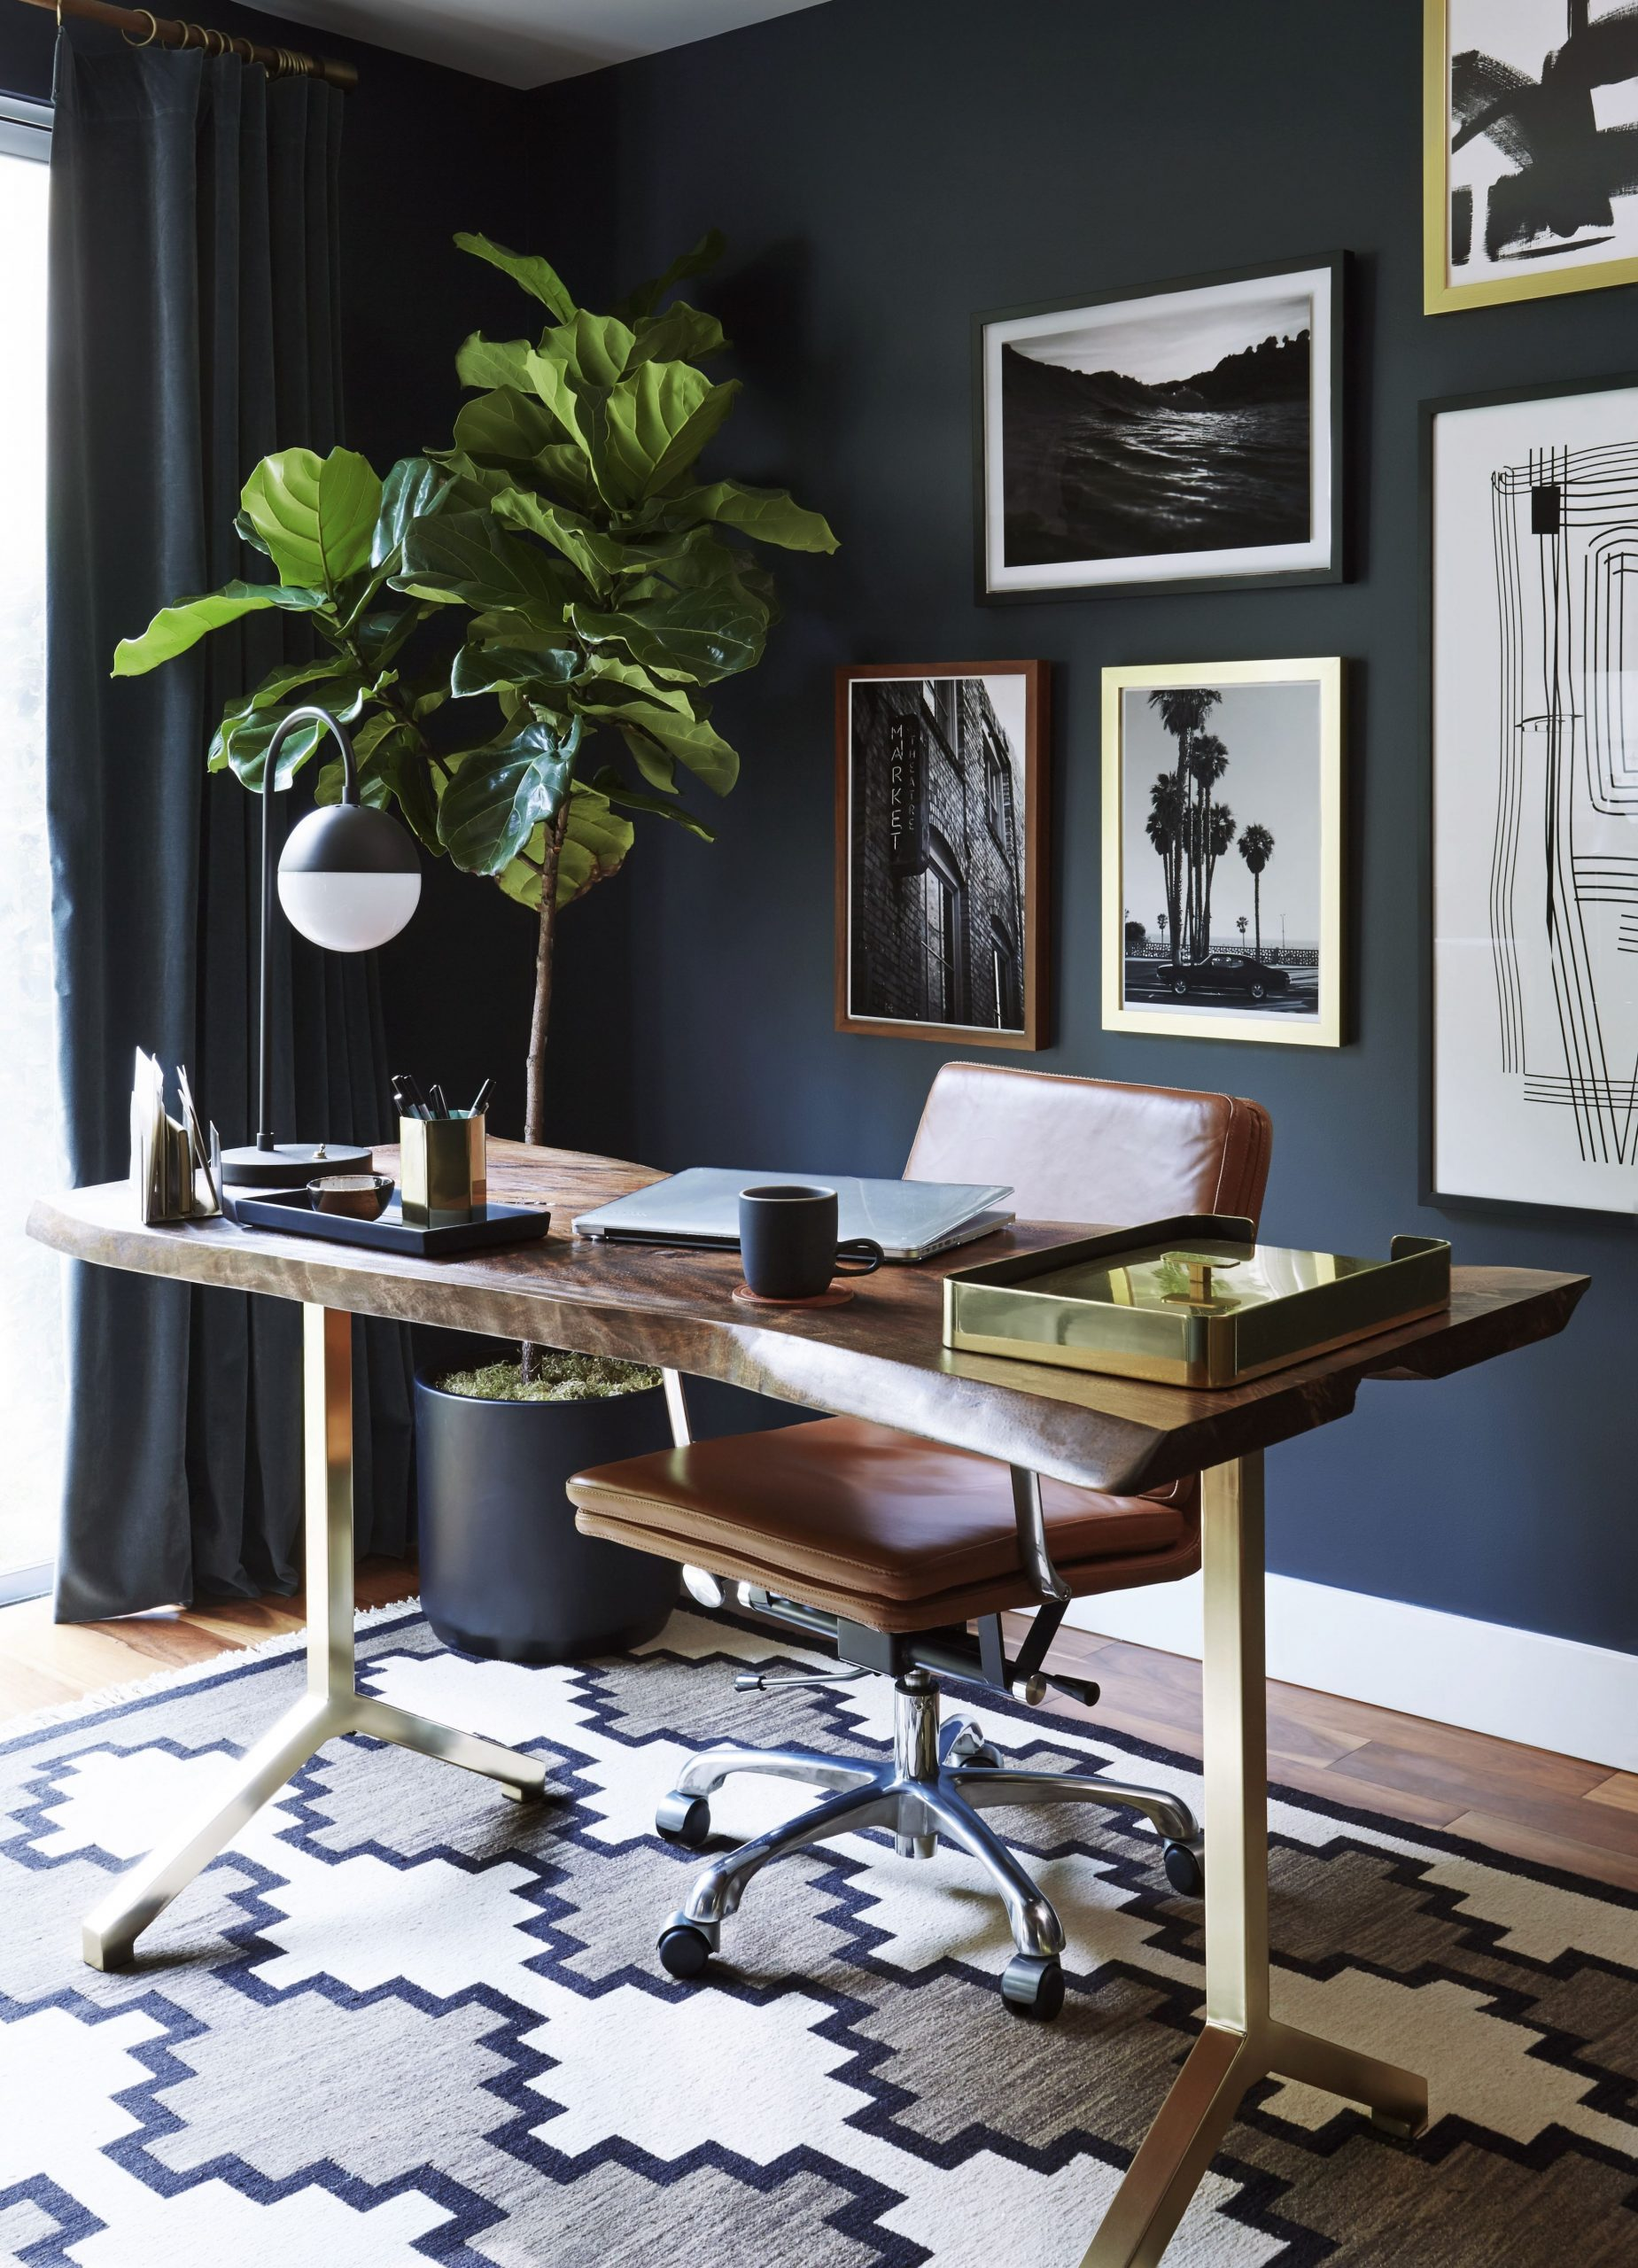 8 Feng Shui Home Office Design Ideas - Home Office Location Ideas